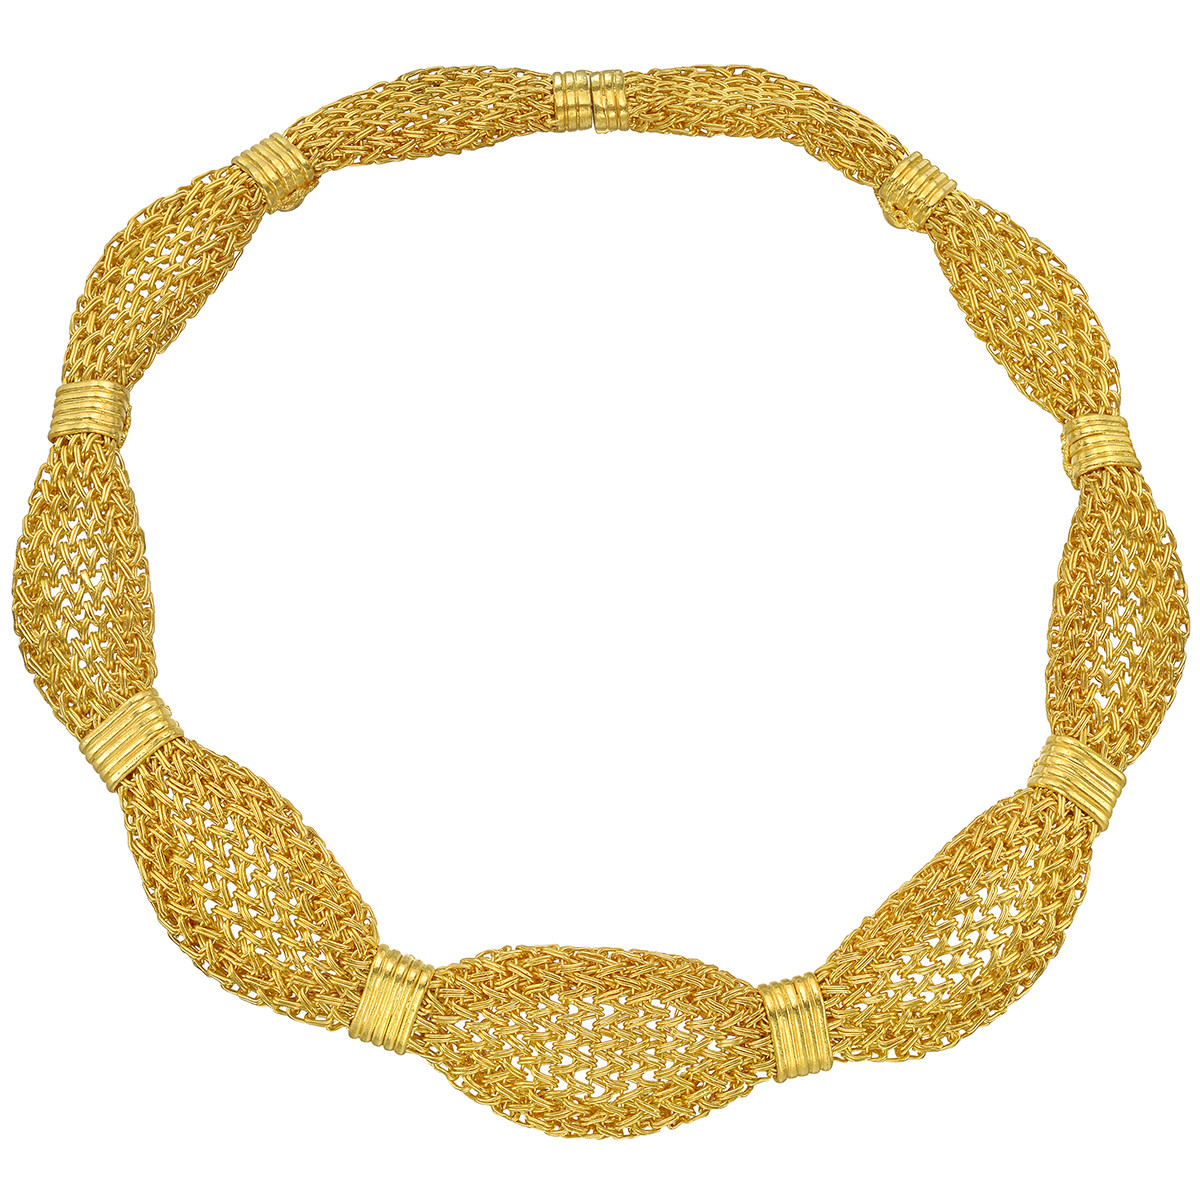 Woven 24k Yellow Gold Necklace